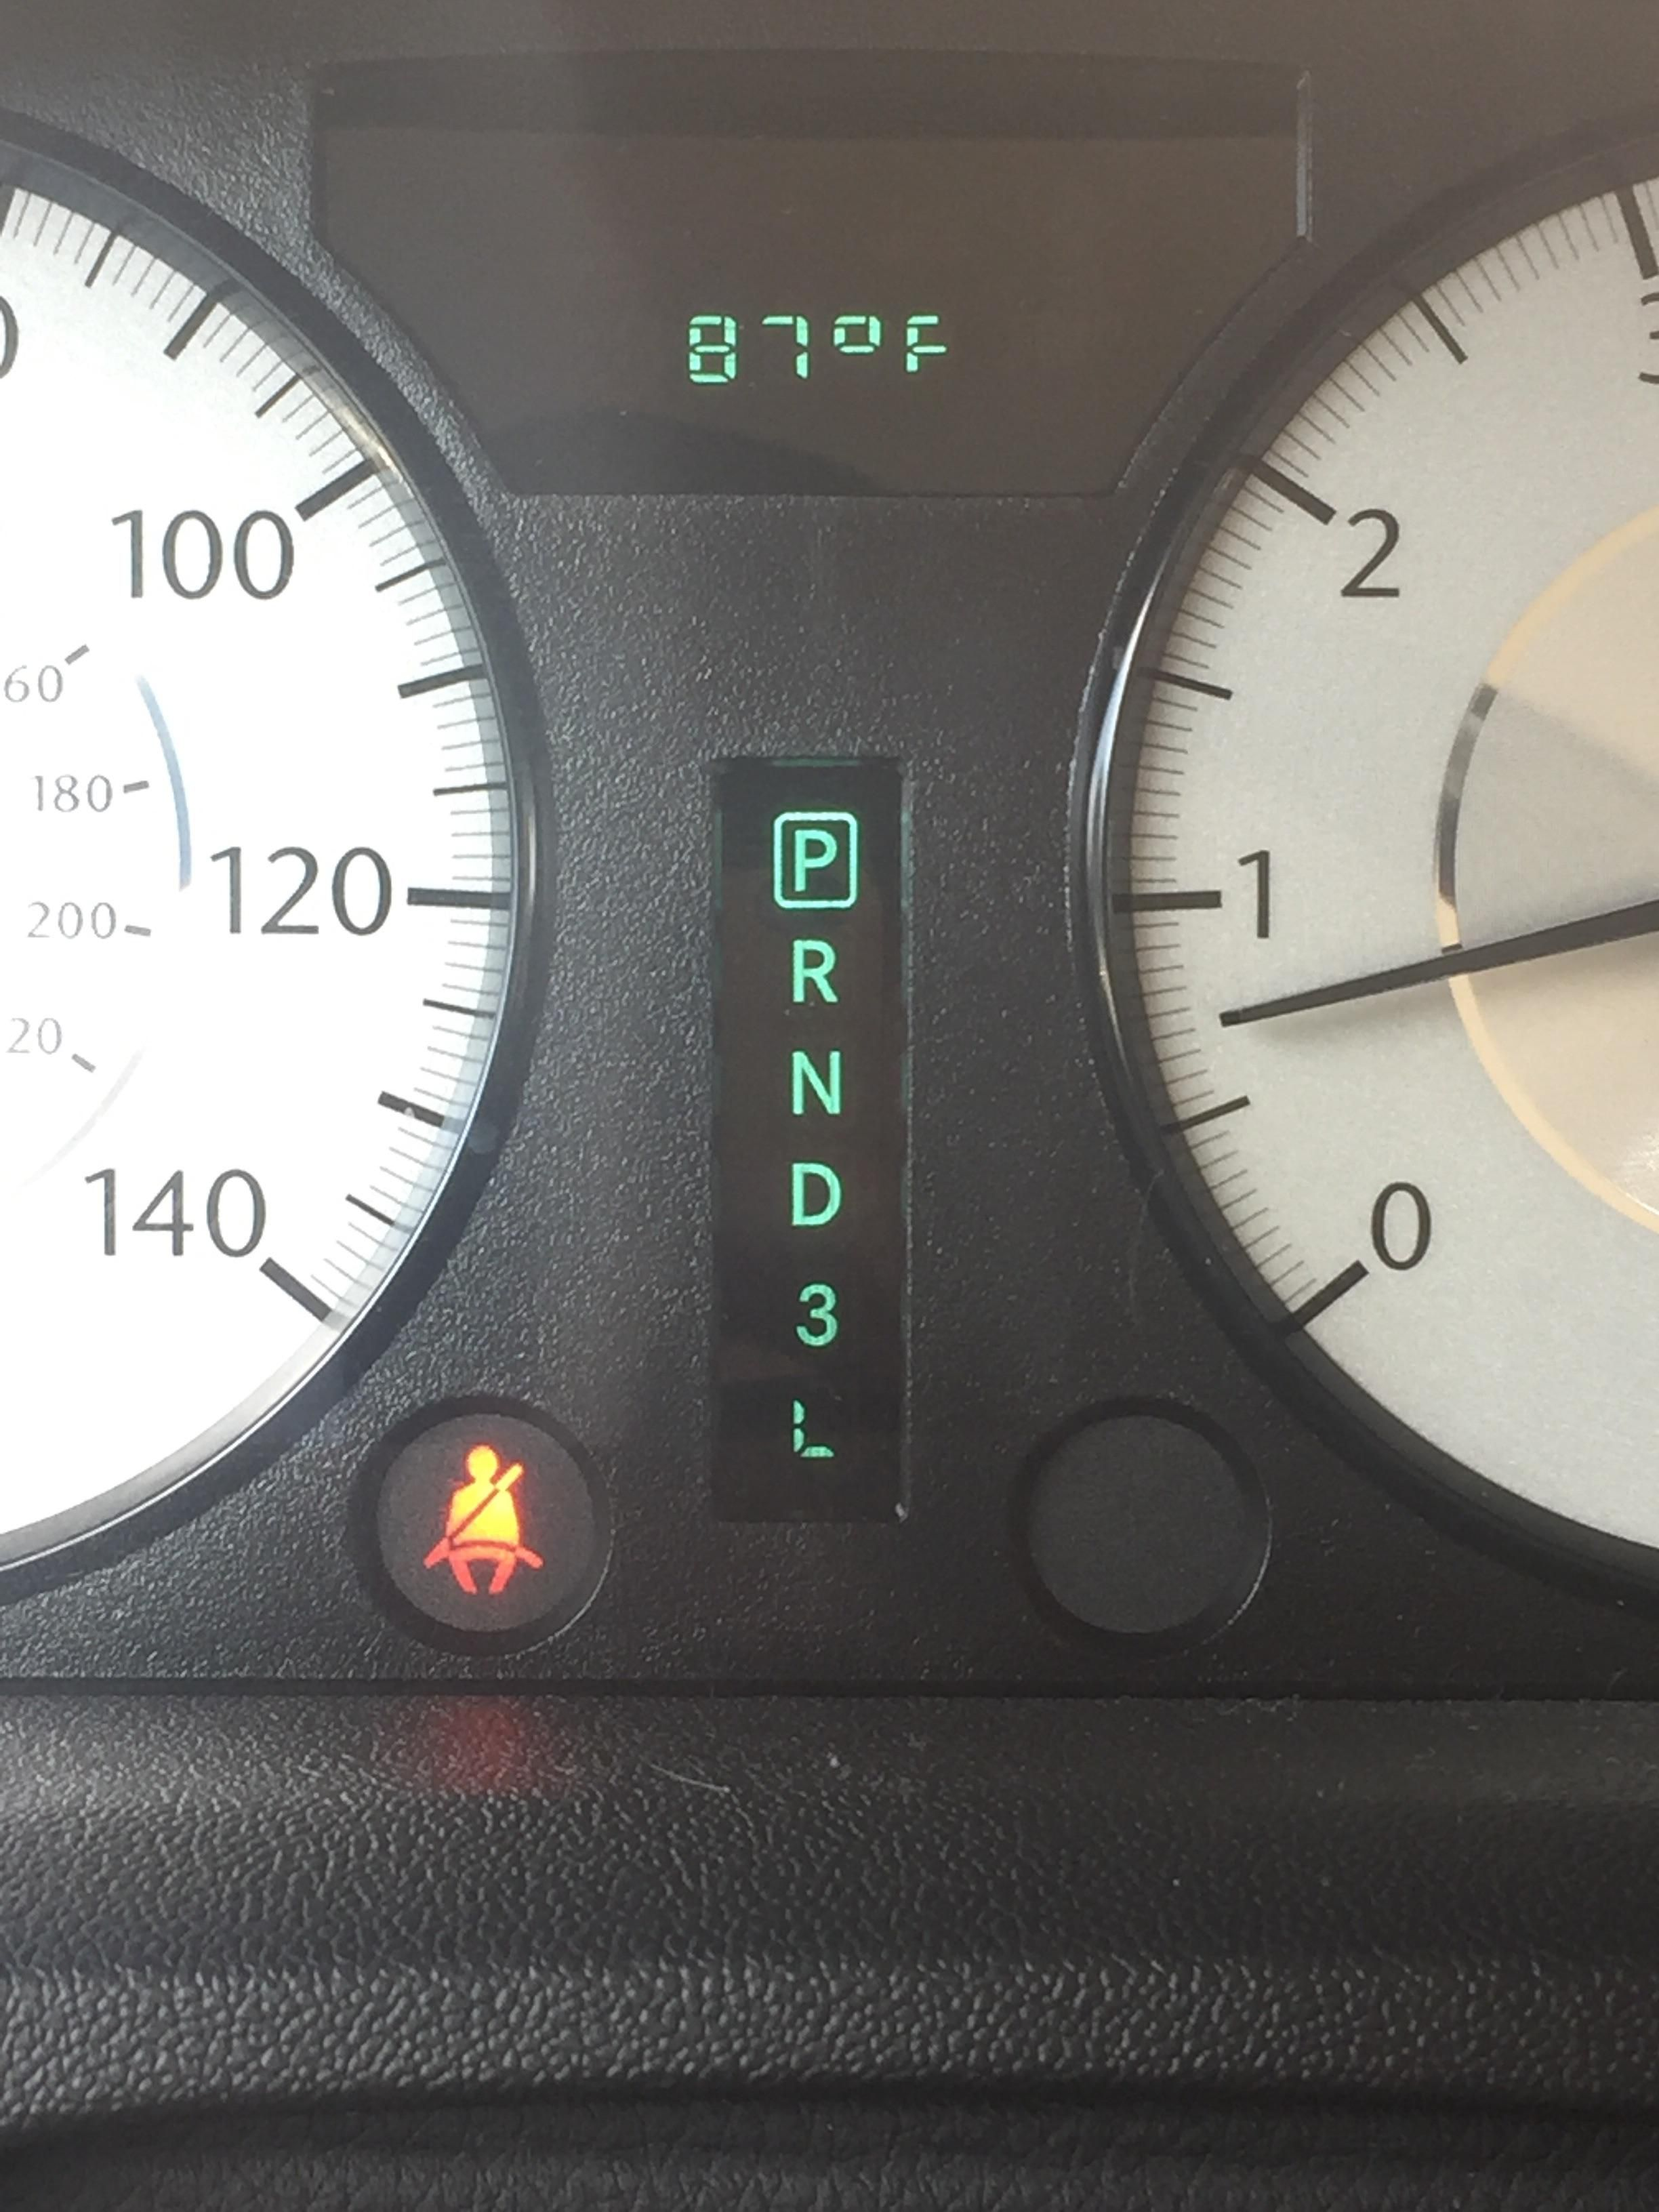 The L is in a different font than the rest of the gears on my car